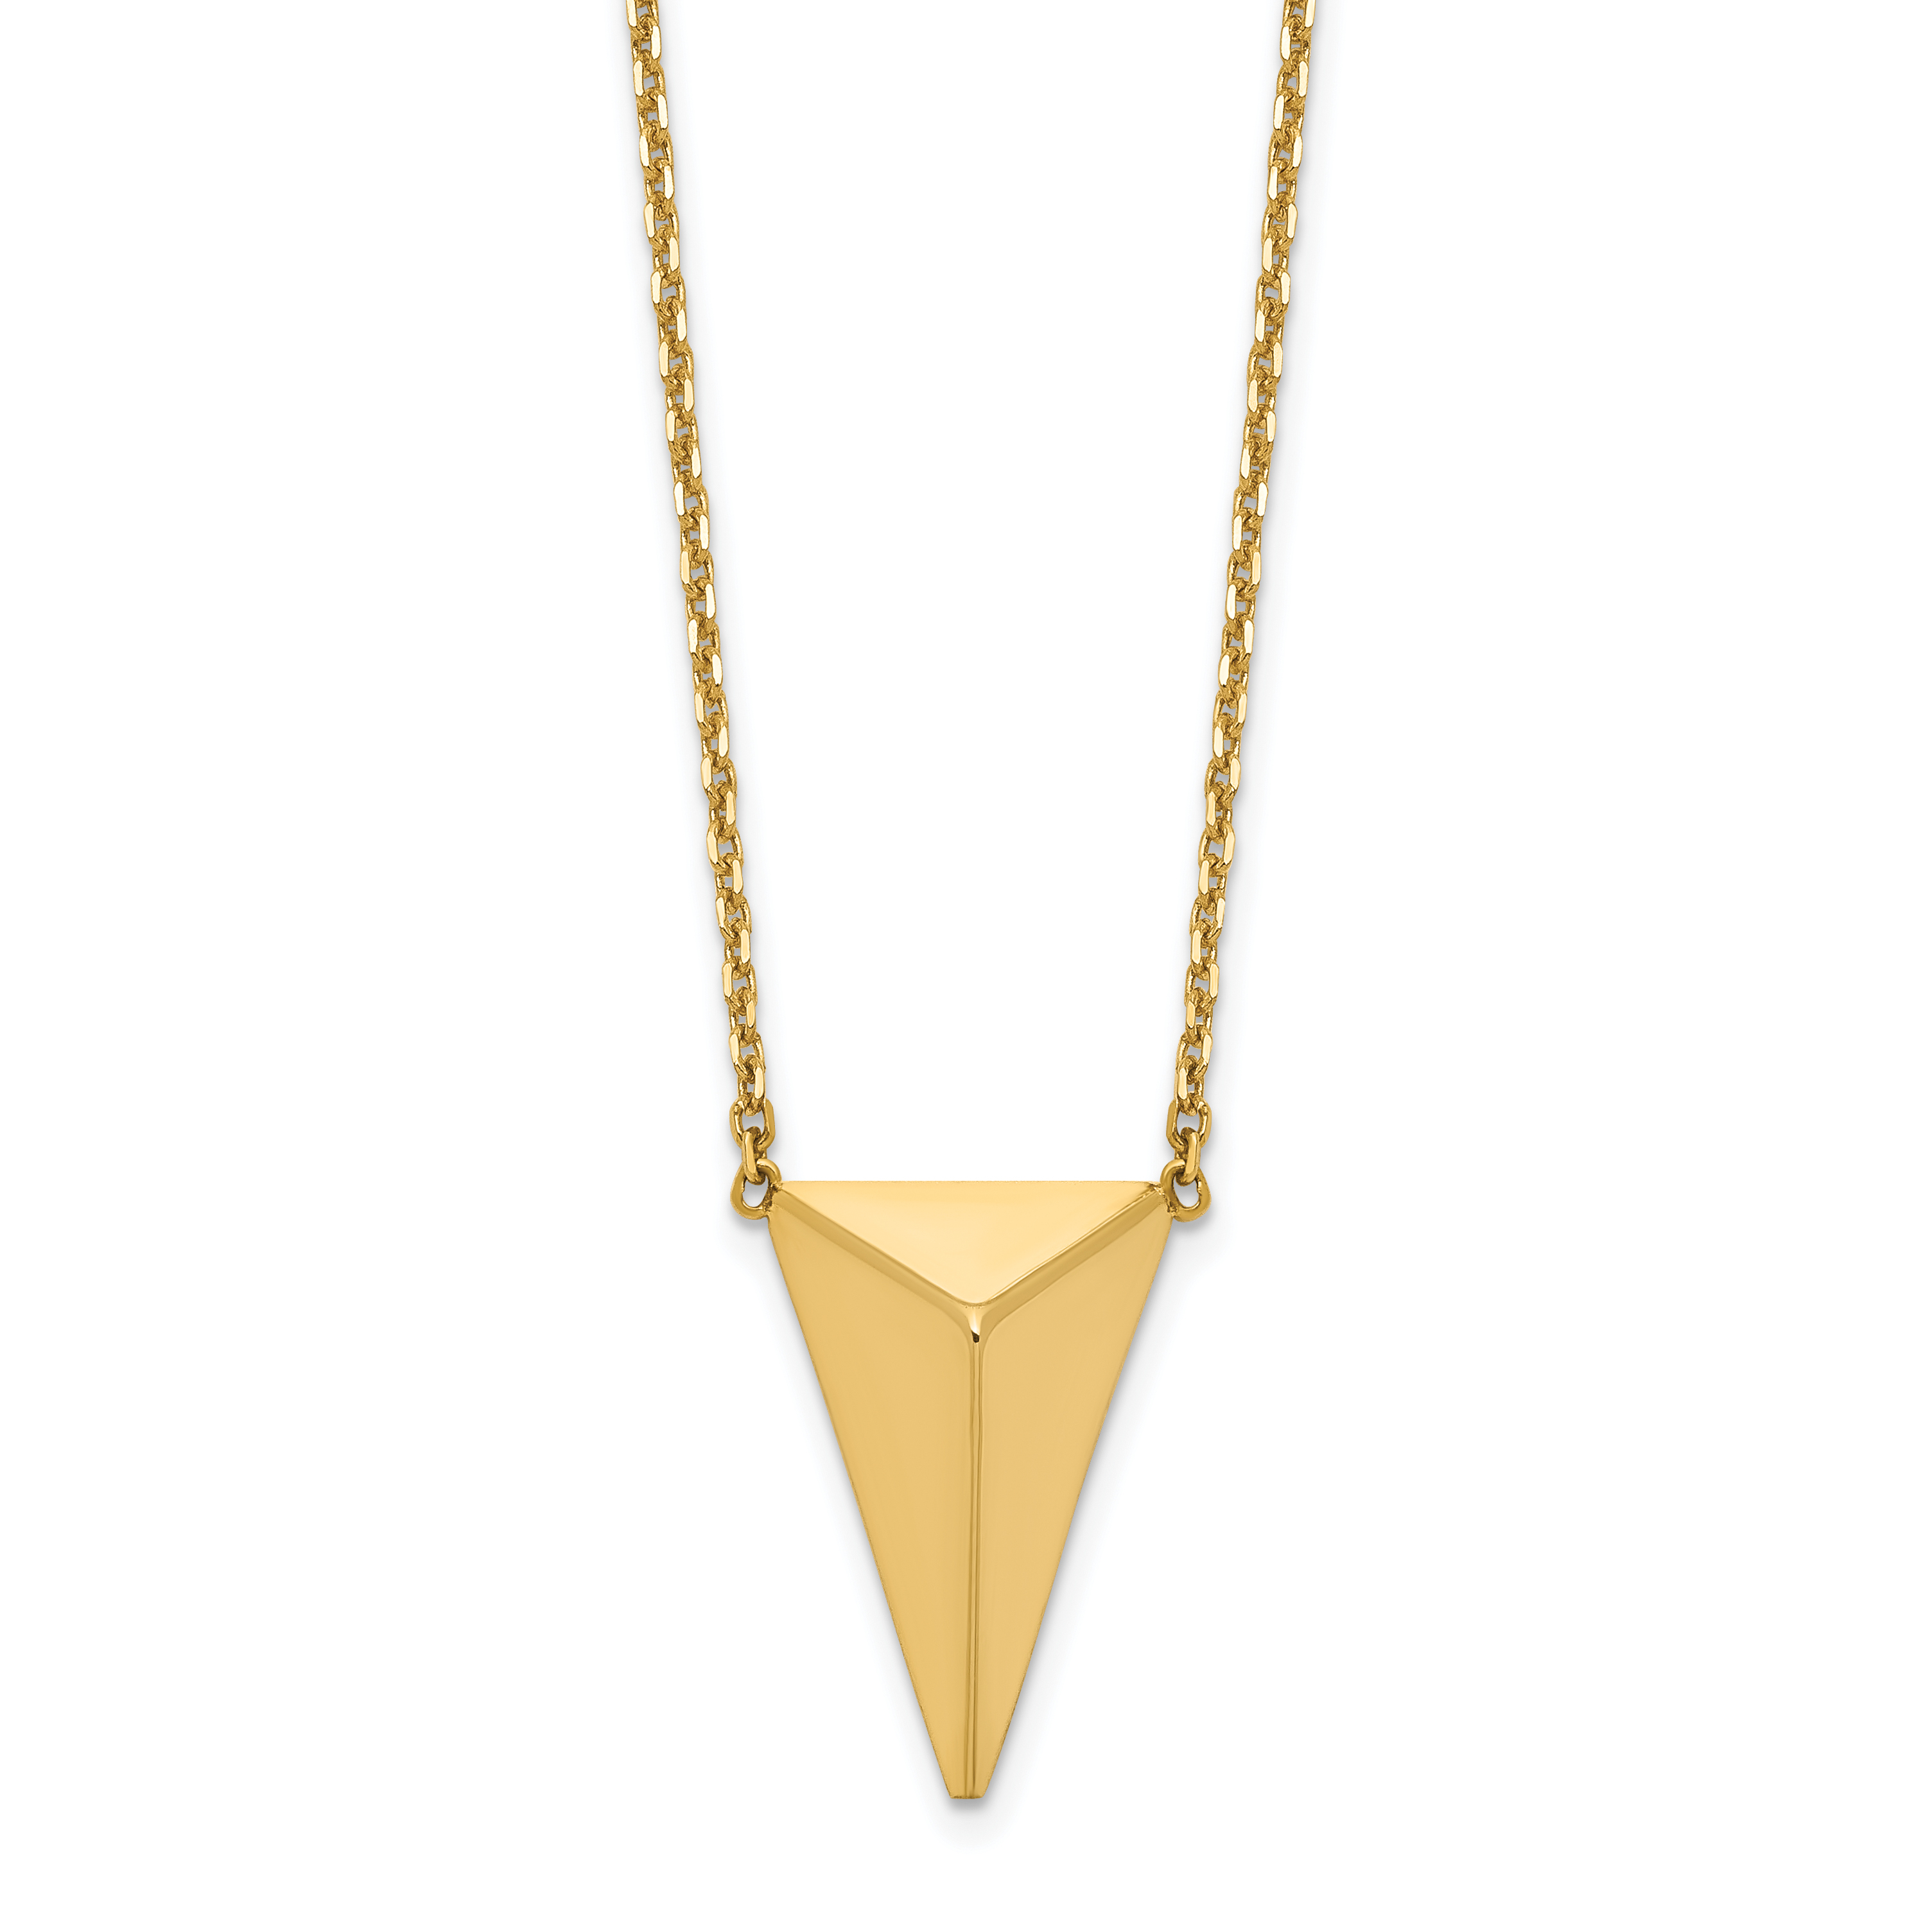 Leslie's 14K Polished 3D Triangle w/ 2 in ext Necklace